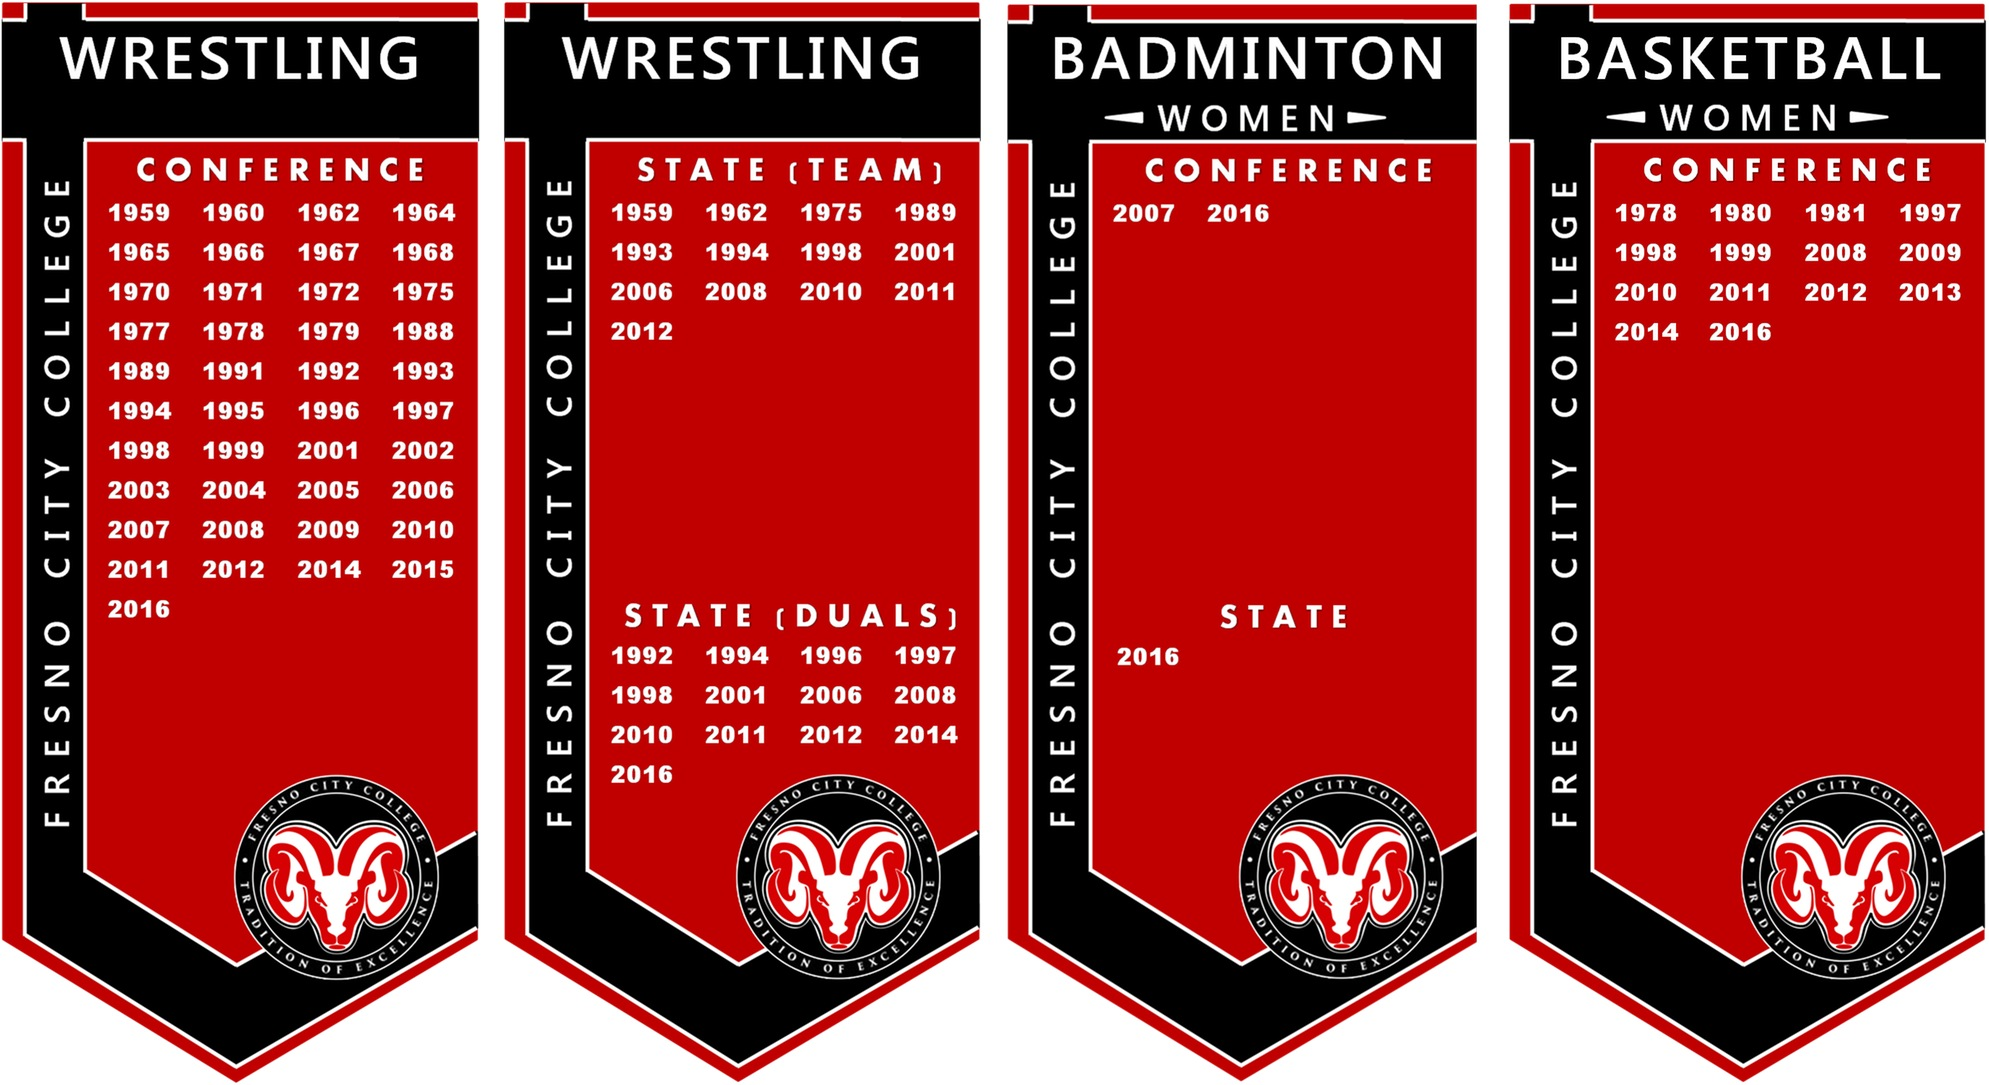 lists of Conference and Championship years for FCC's Wrestling, Women's Badminton, and Women's Basketball teams.